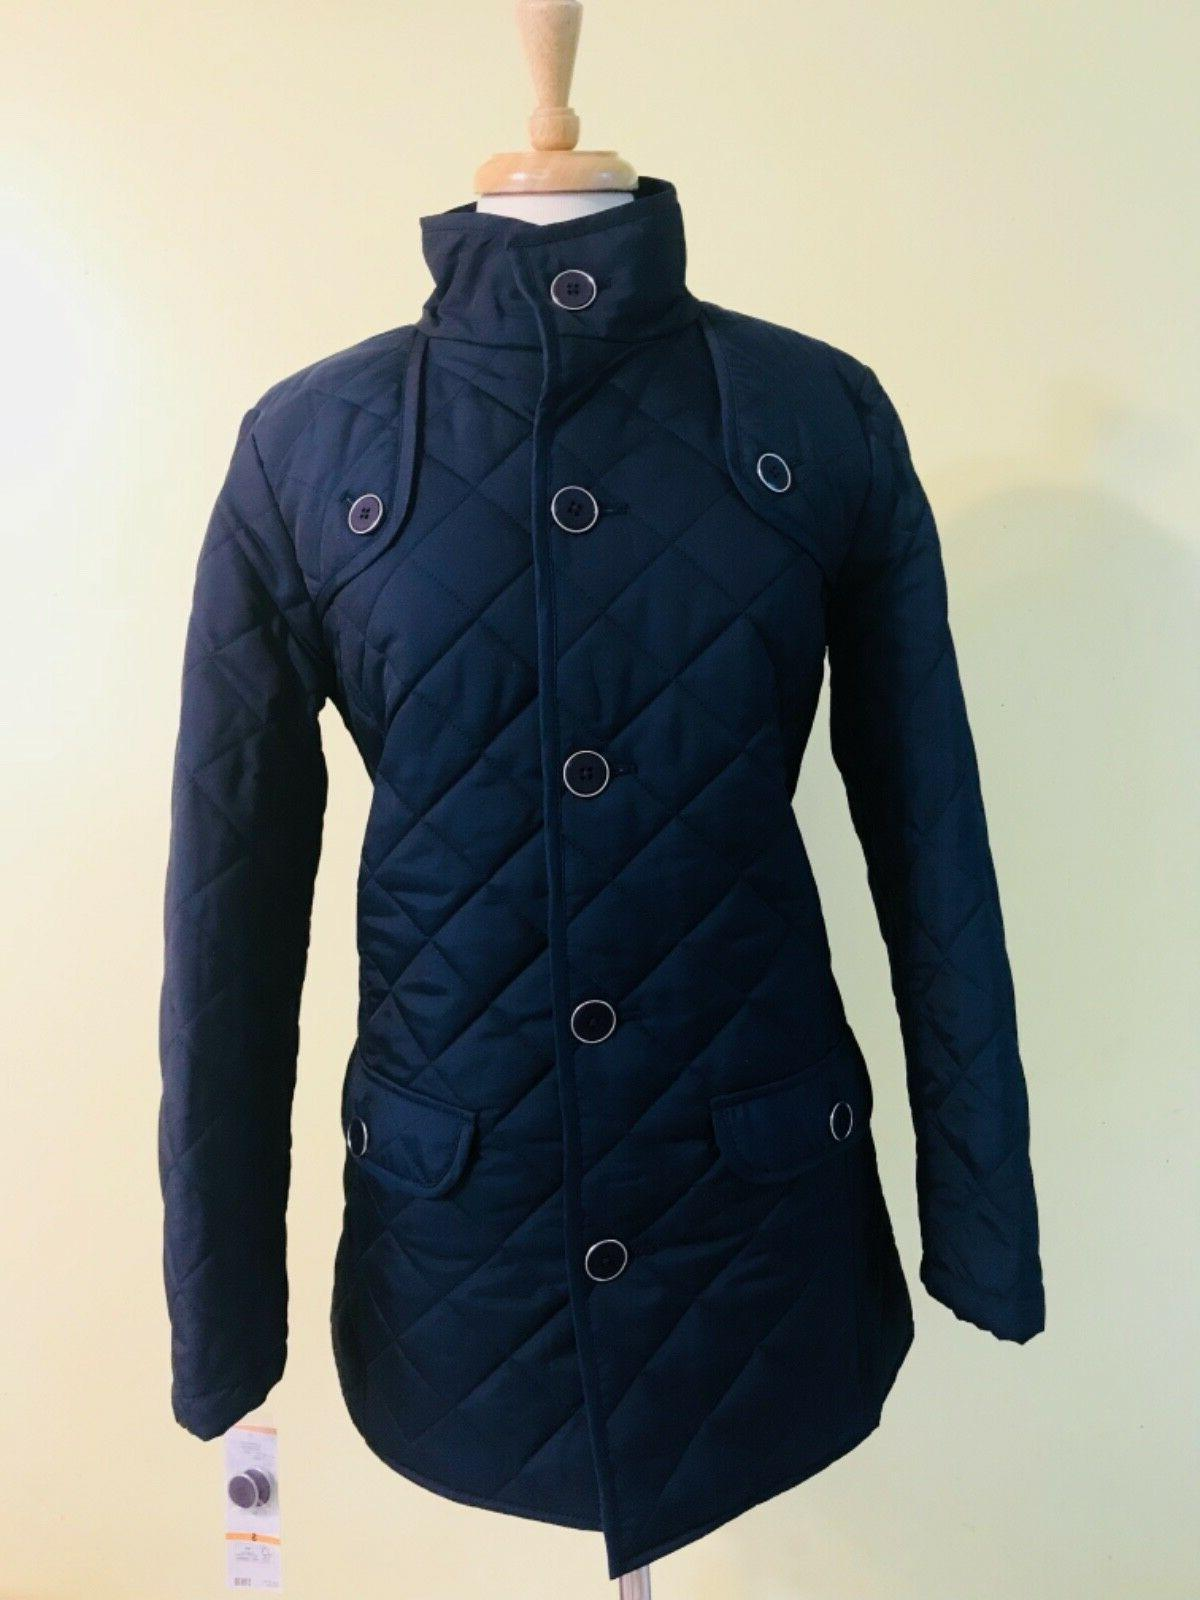 womens quilted jacket size s navy 169